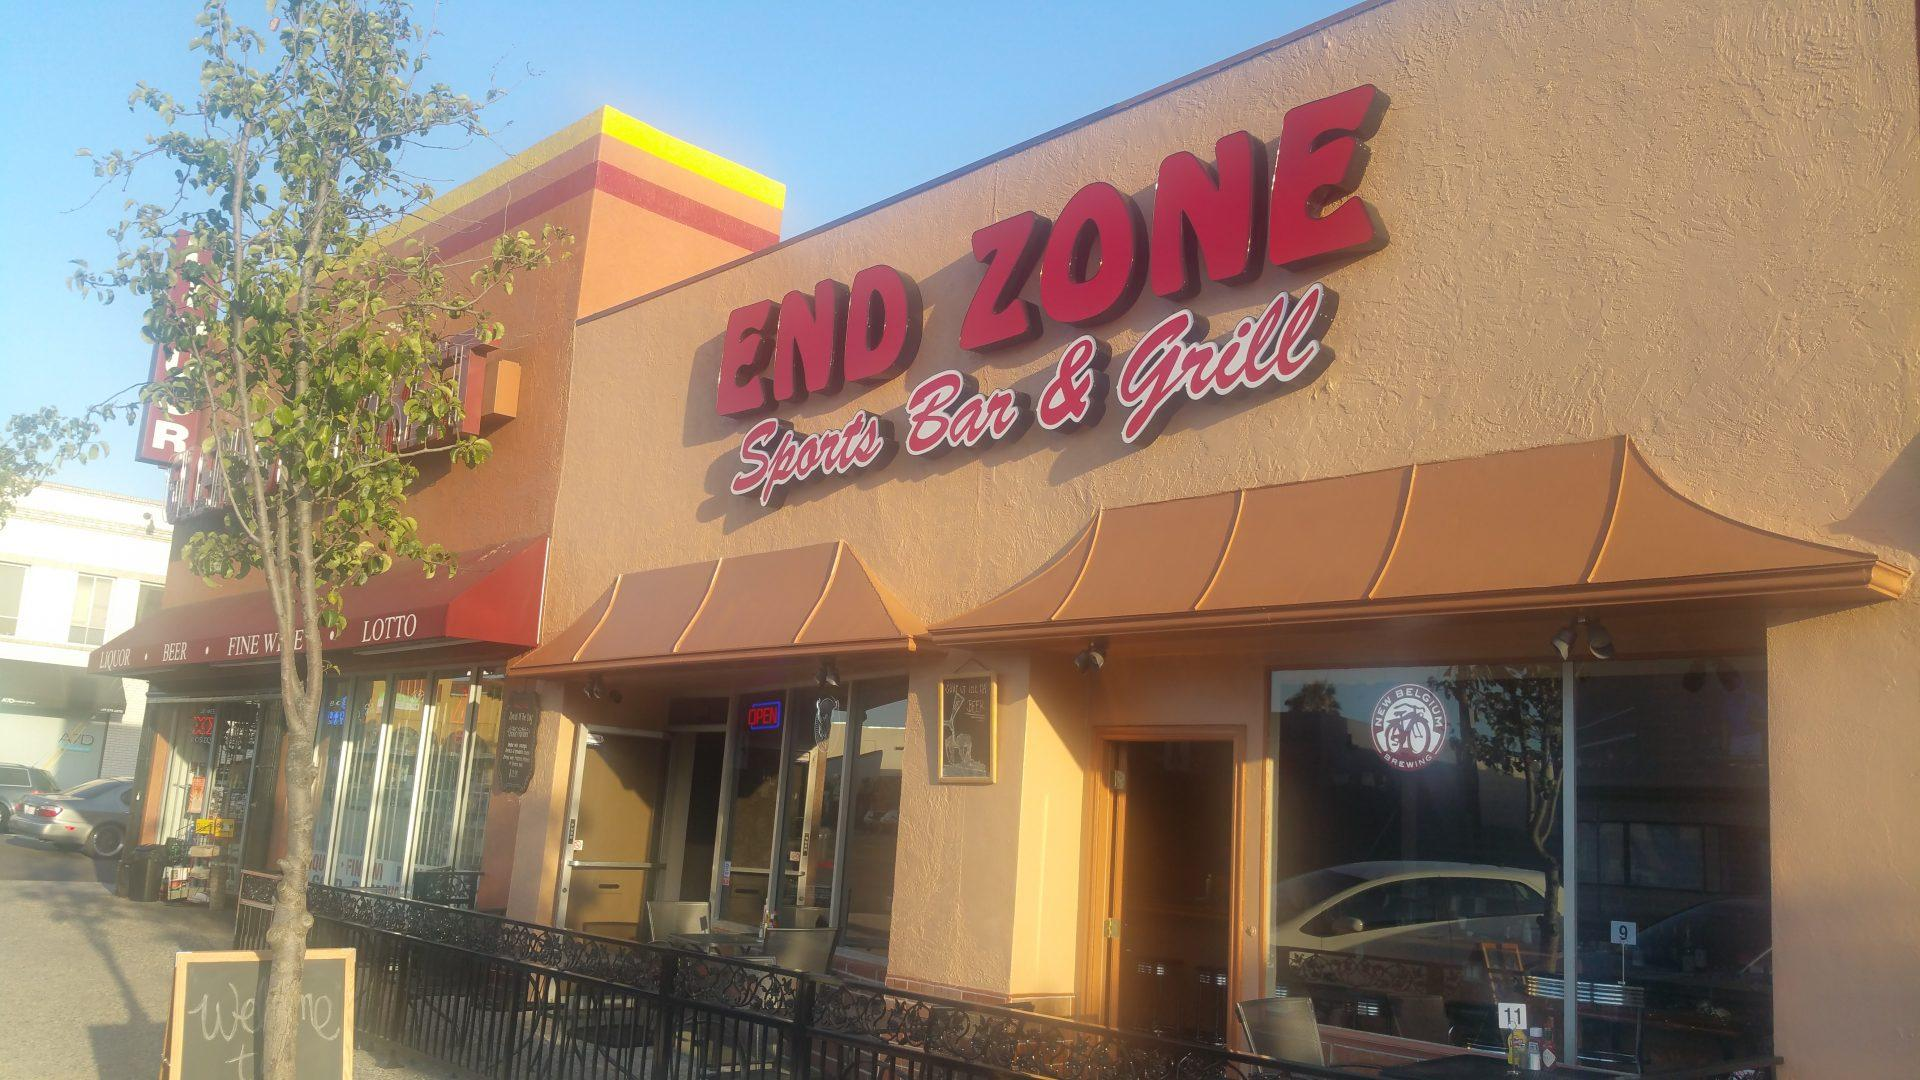 Uptown food briefs may 6 san diego uptown news san for Food bar t zone